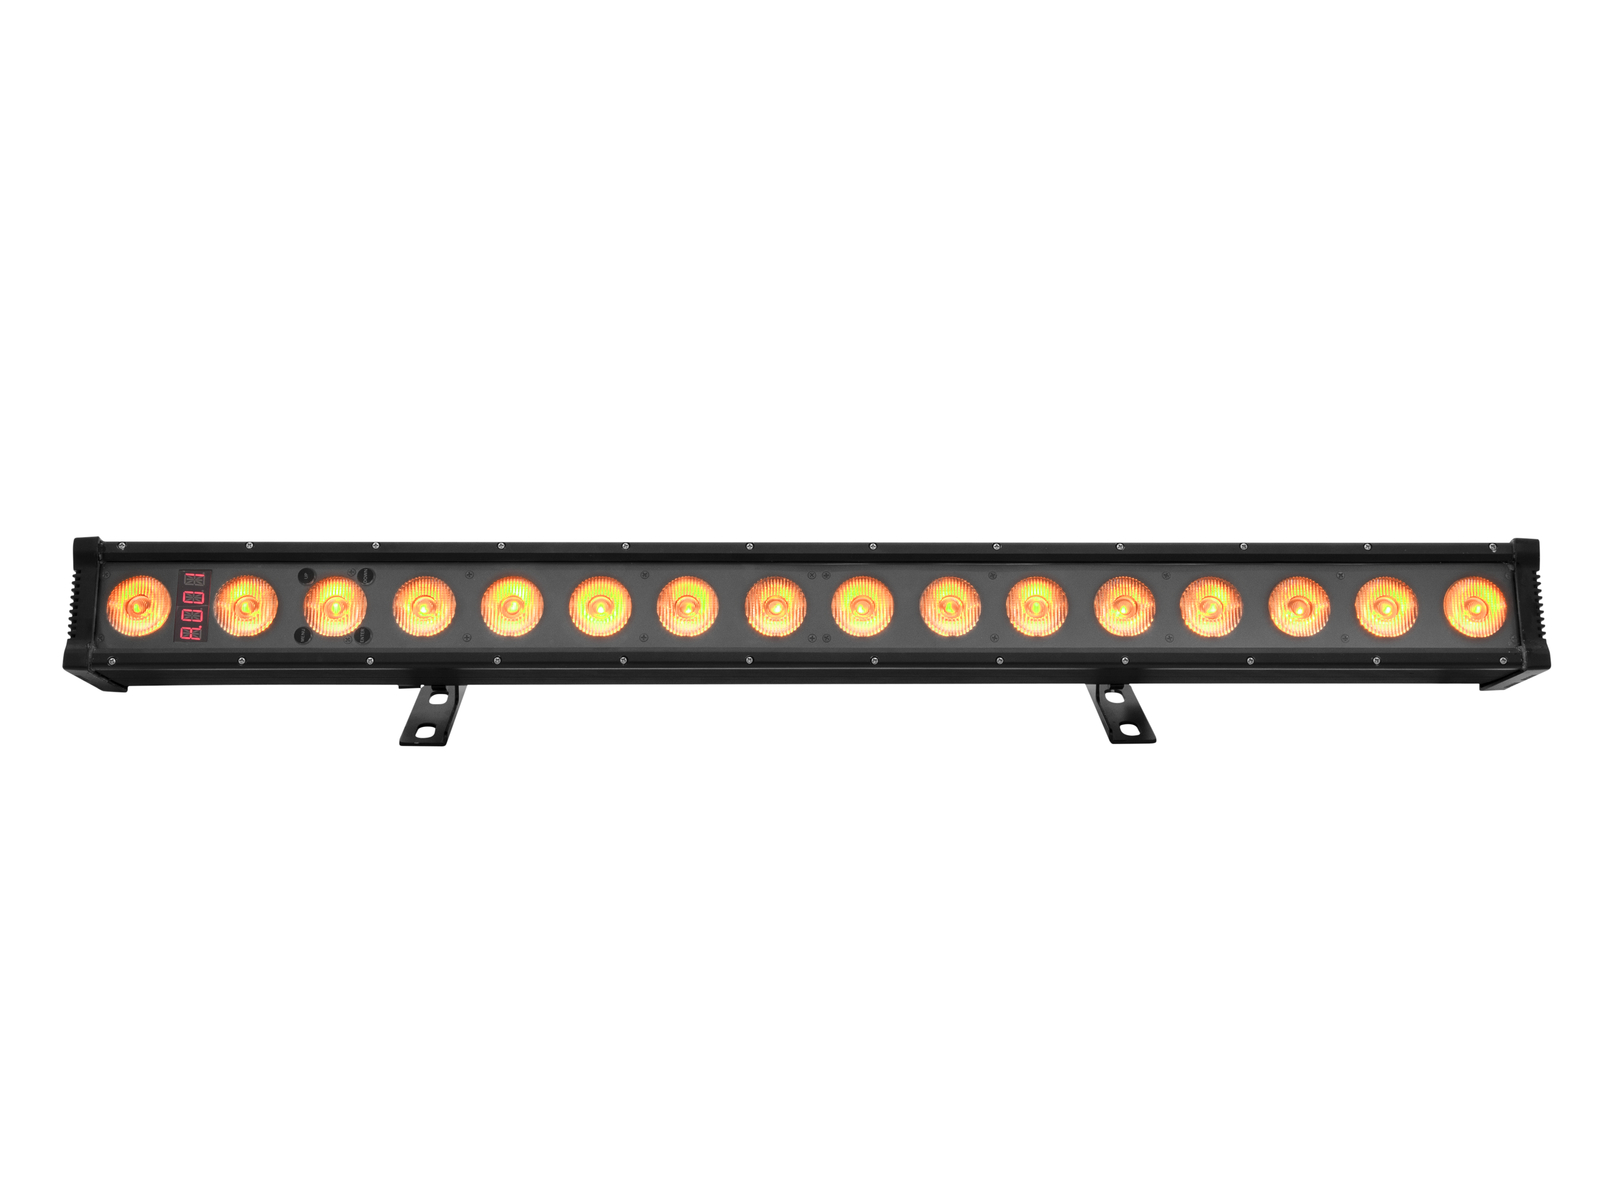 EUROLITE LED IP T2000 QLC bar